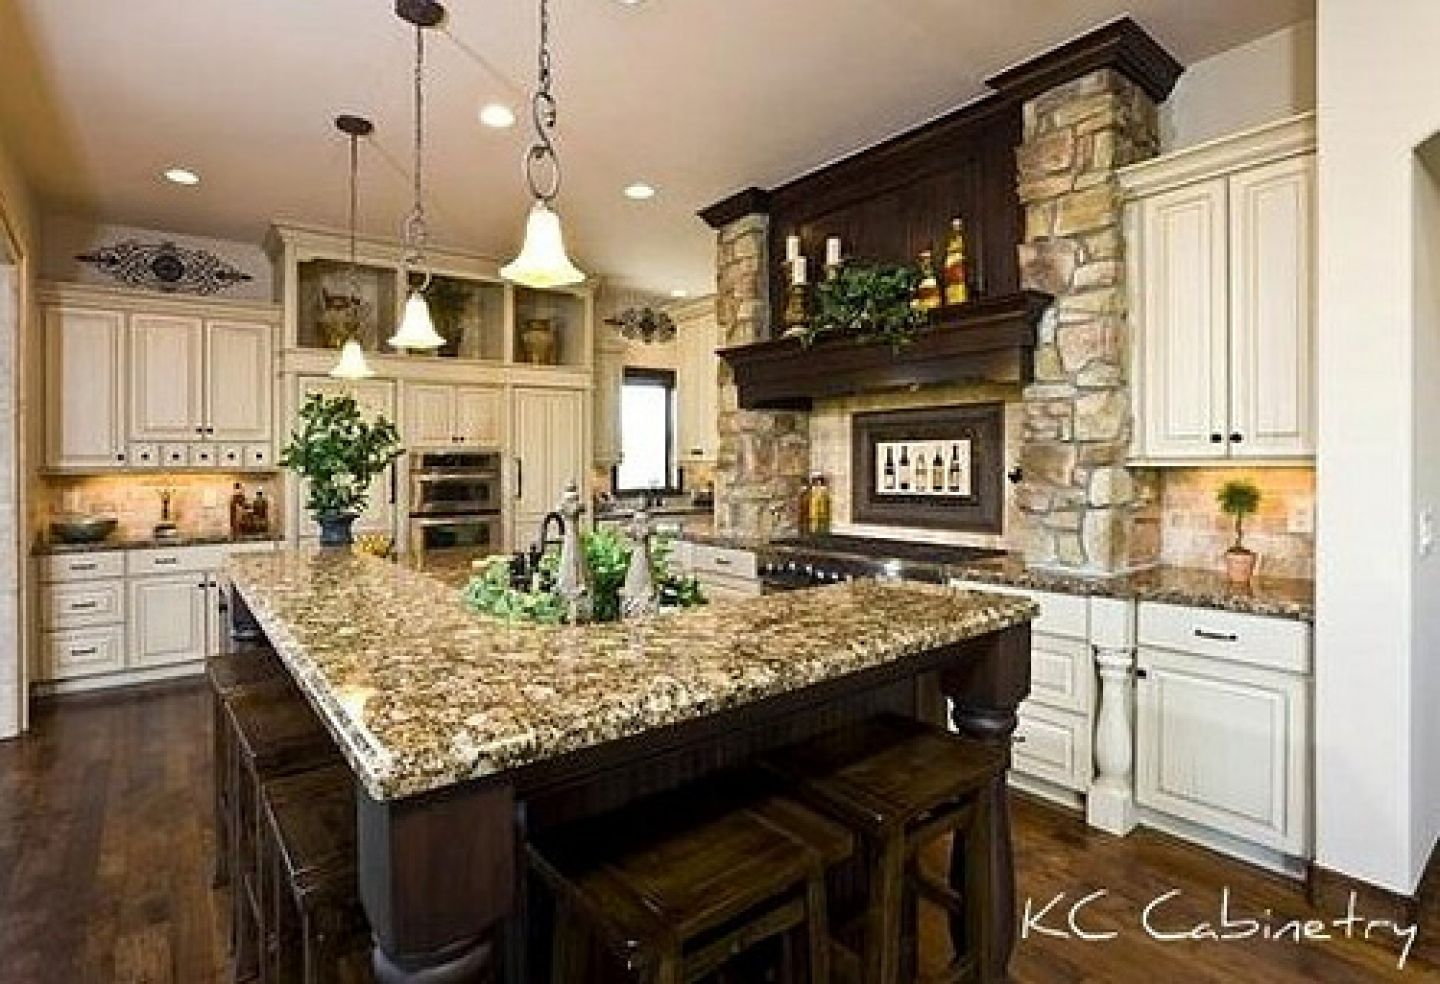 House Beautiful  Home Decorating Ideas Kitchen Designs Get The Magnificent Kitchen Design Gallery Ideas Inspiration